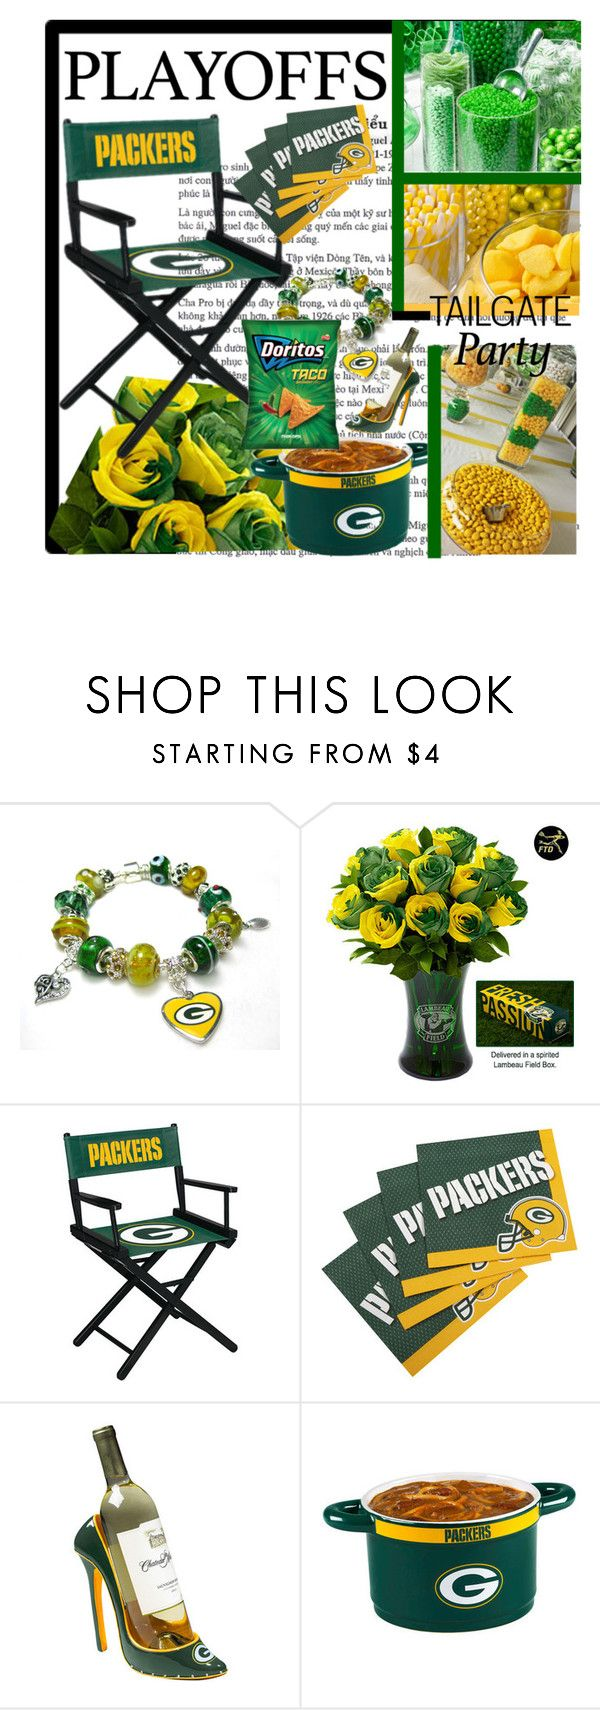 """Playoffs Tailgate Party Green Bay Packers"" by jewelryrecipe ❤ liked on Polyvore featuring interior, interiors, interior design, home, home decor, interior decorating, playoffs and tailgatingparty"